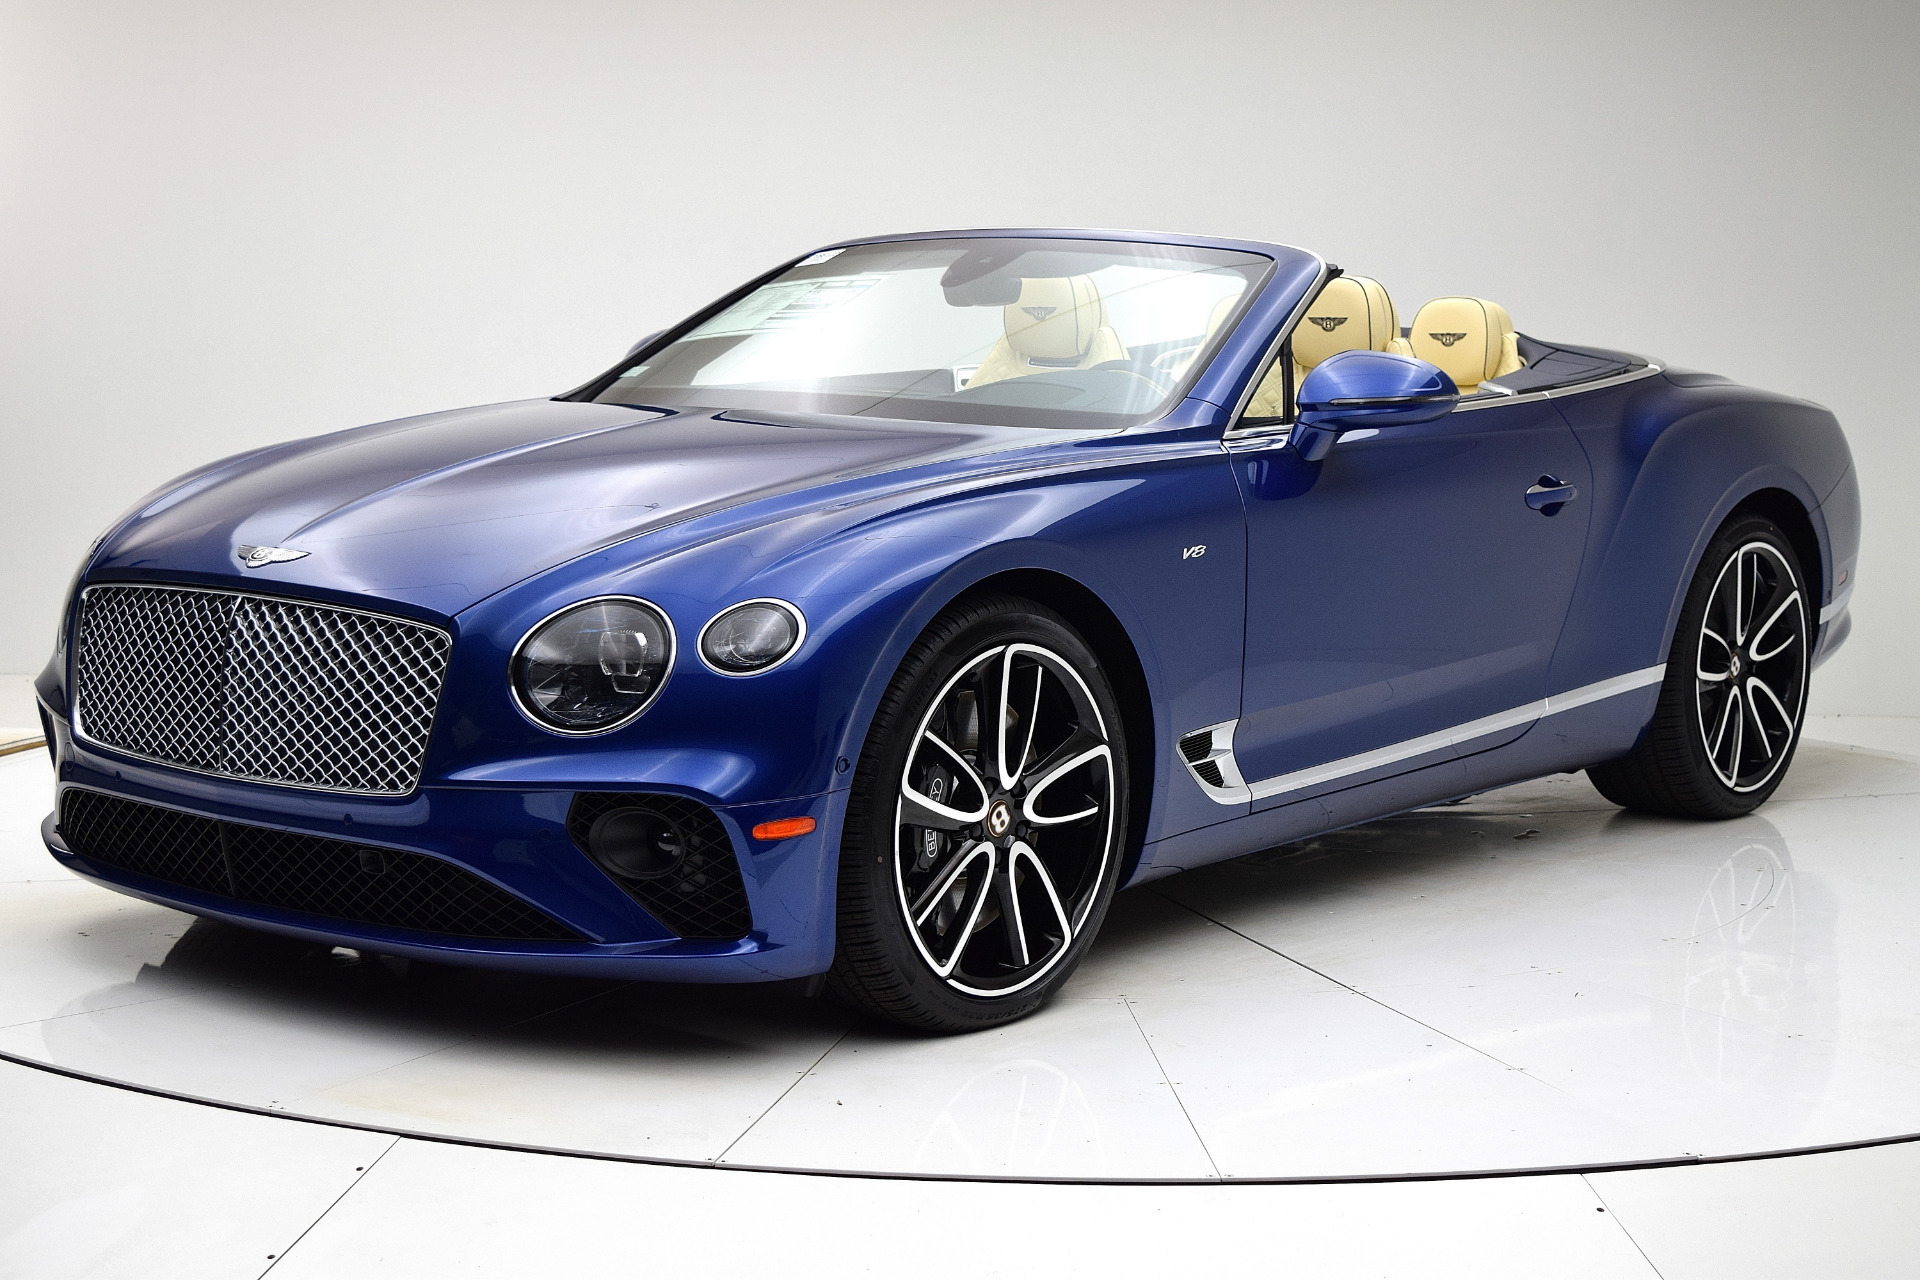 New 2020 Bentley Continental Gt V8 Convertible For Sale 269 700 Bentley Palmyra N J Stock 20be122